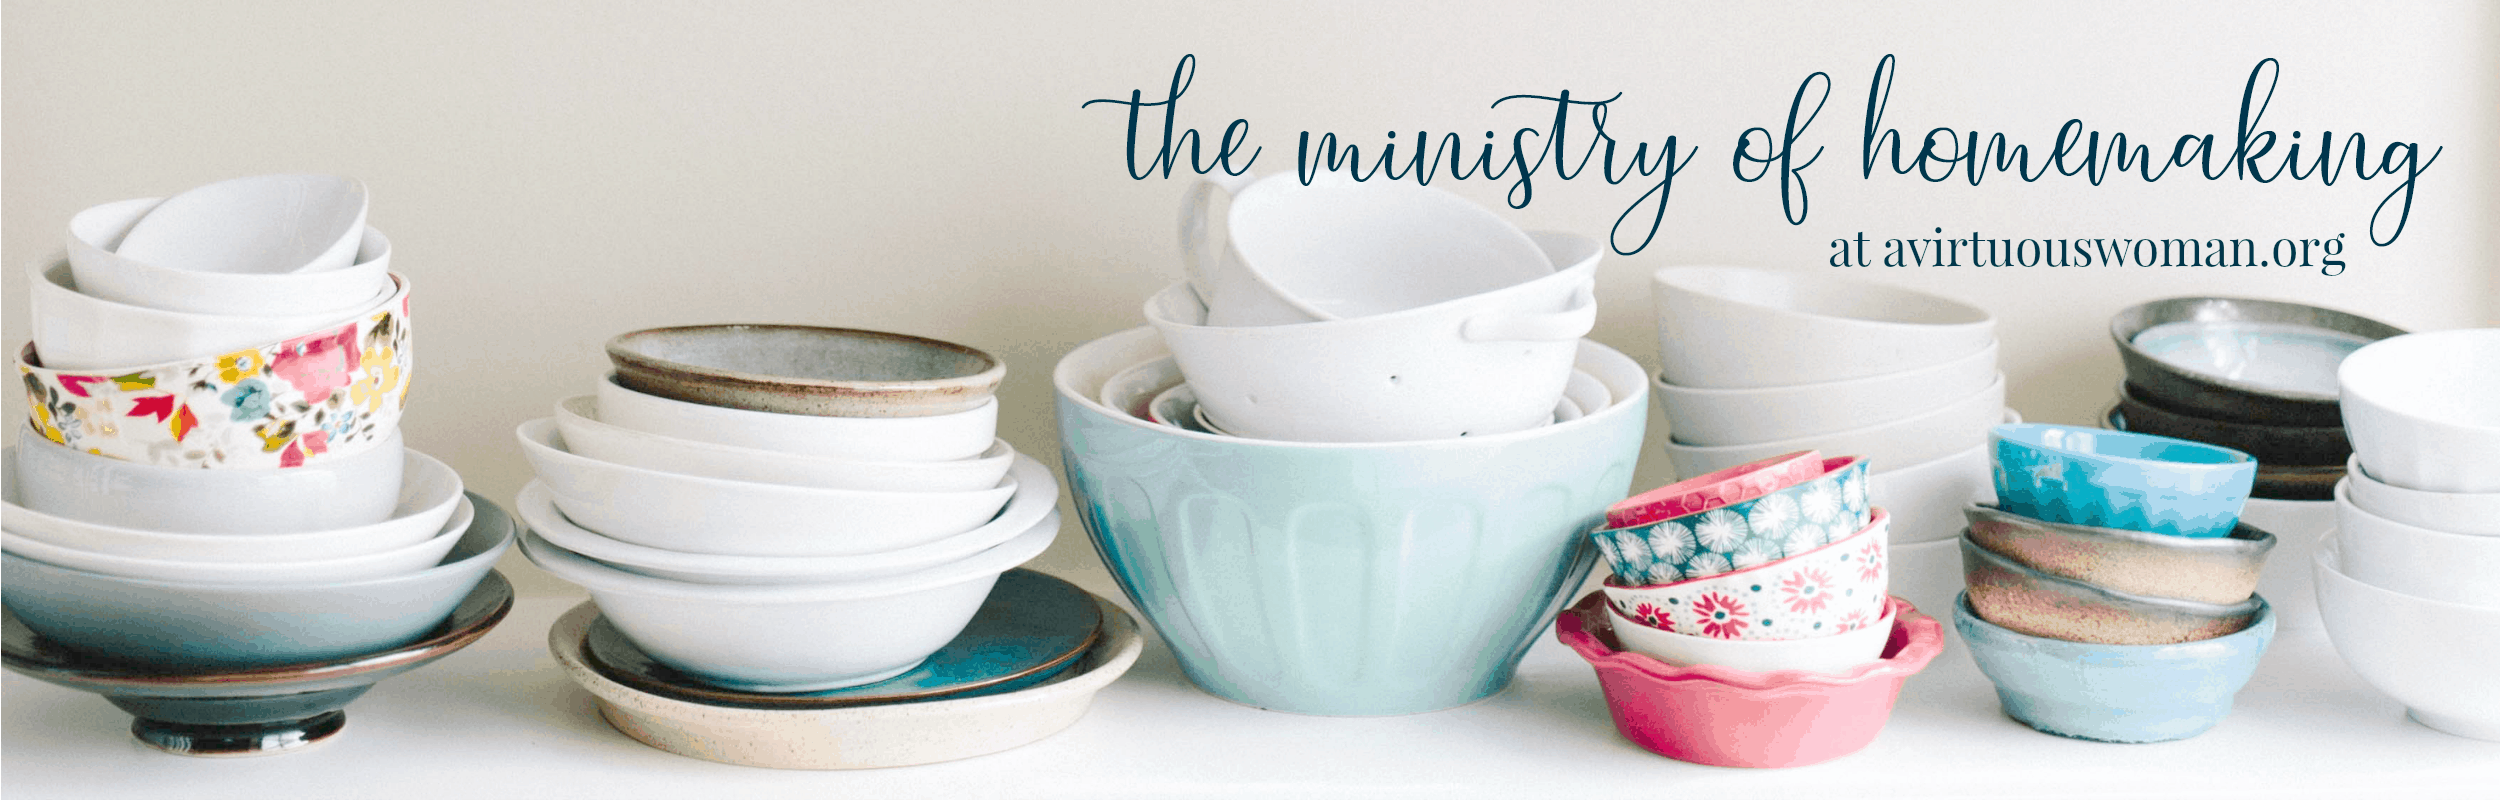 the ministry of homemaking1